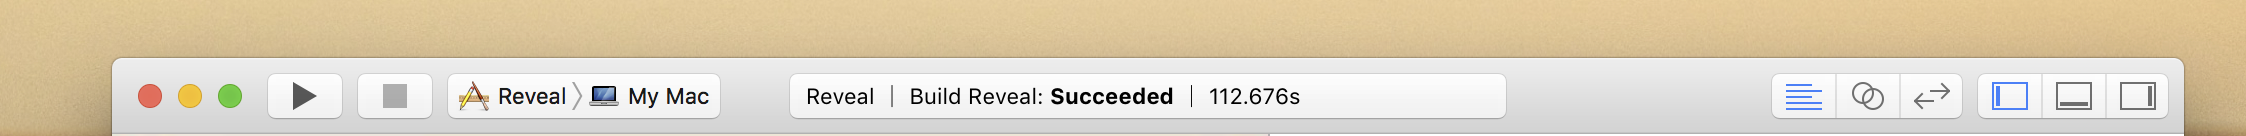 Xcode Toolbar showing build duration